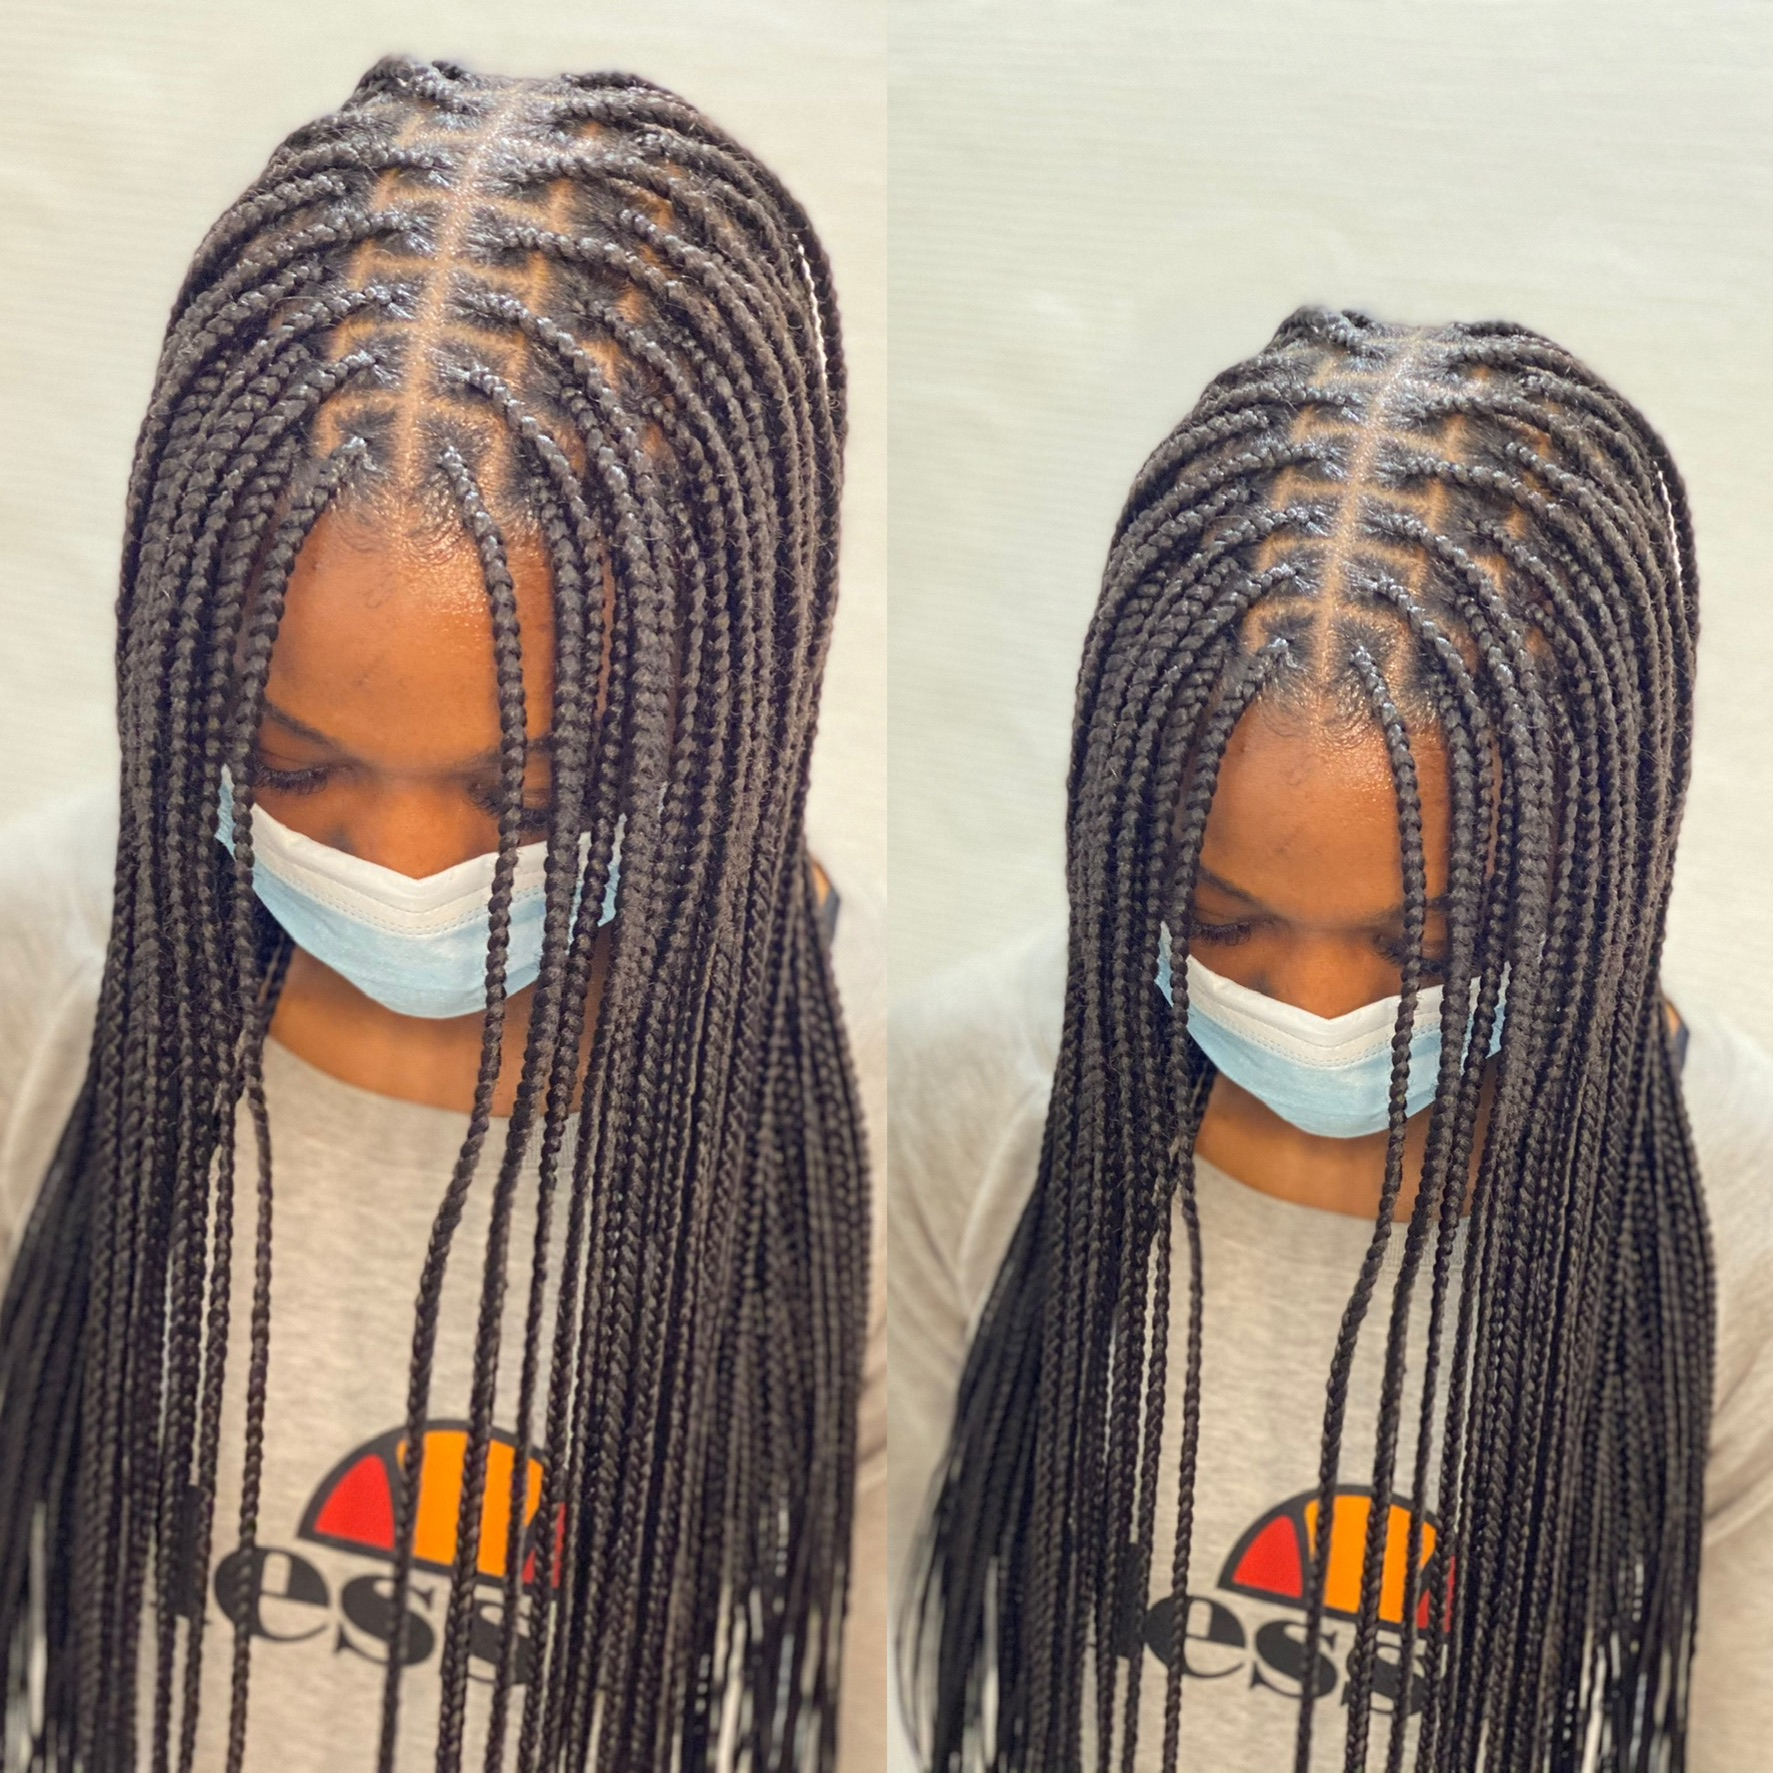 salon de coiffure afro tresse tresses box braids crochet braids vanilles tissages paris 75 77 78 91 92 93 94 95 SGOIOHYB